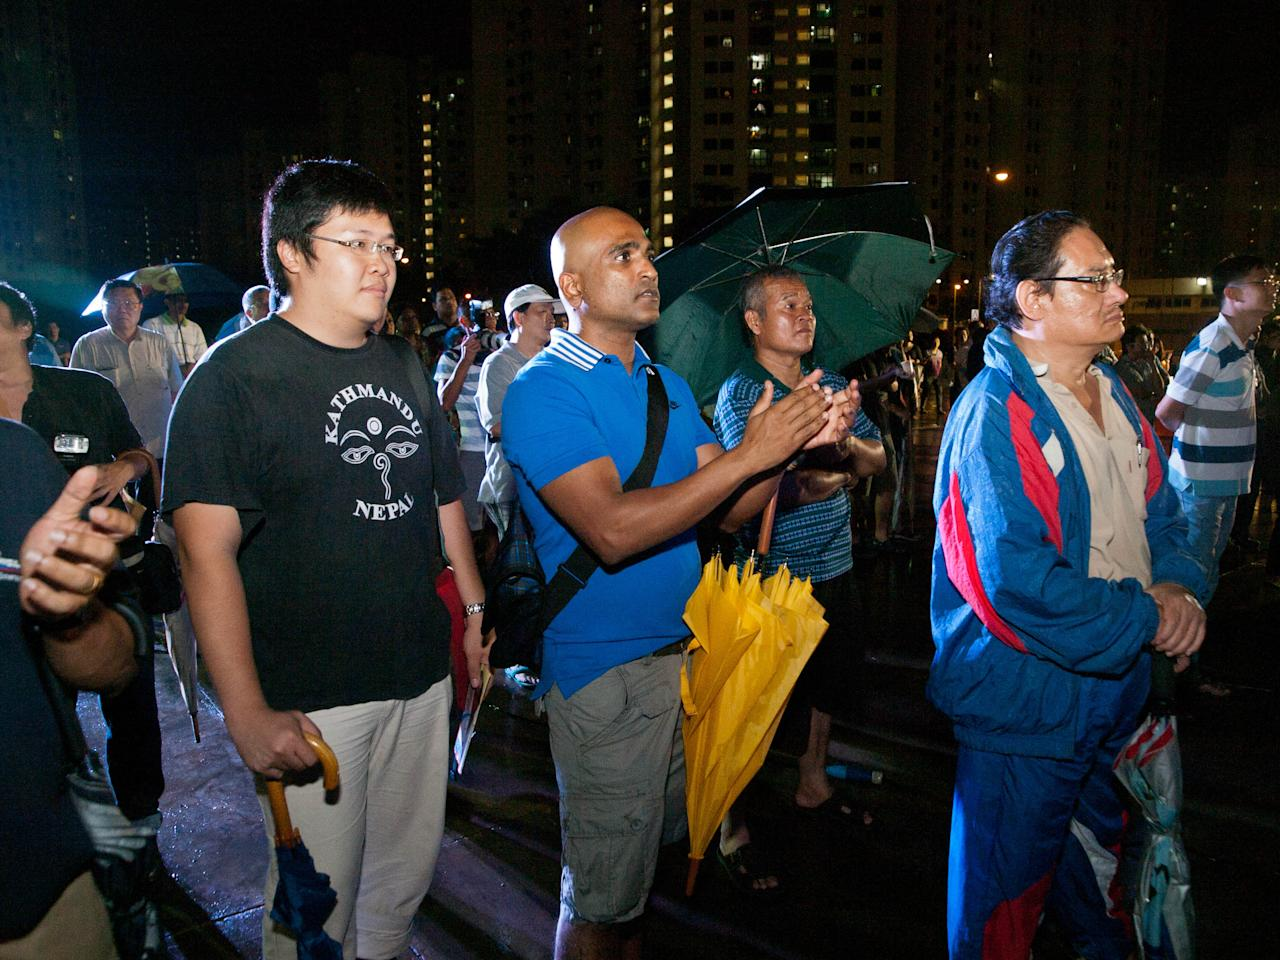 Human rights lawyer M Ravi was spotted at the rally. (Yahoo! photo/Alvin Ho)